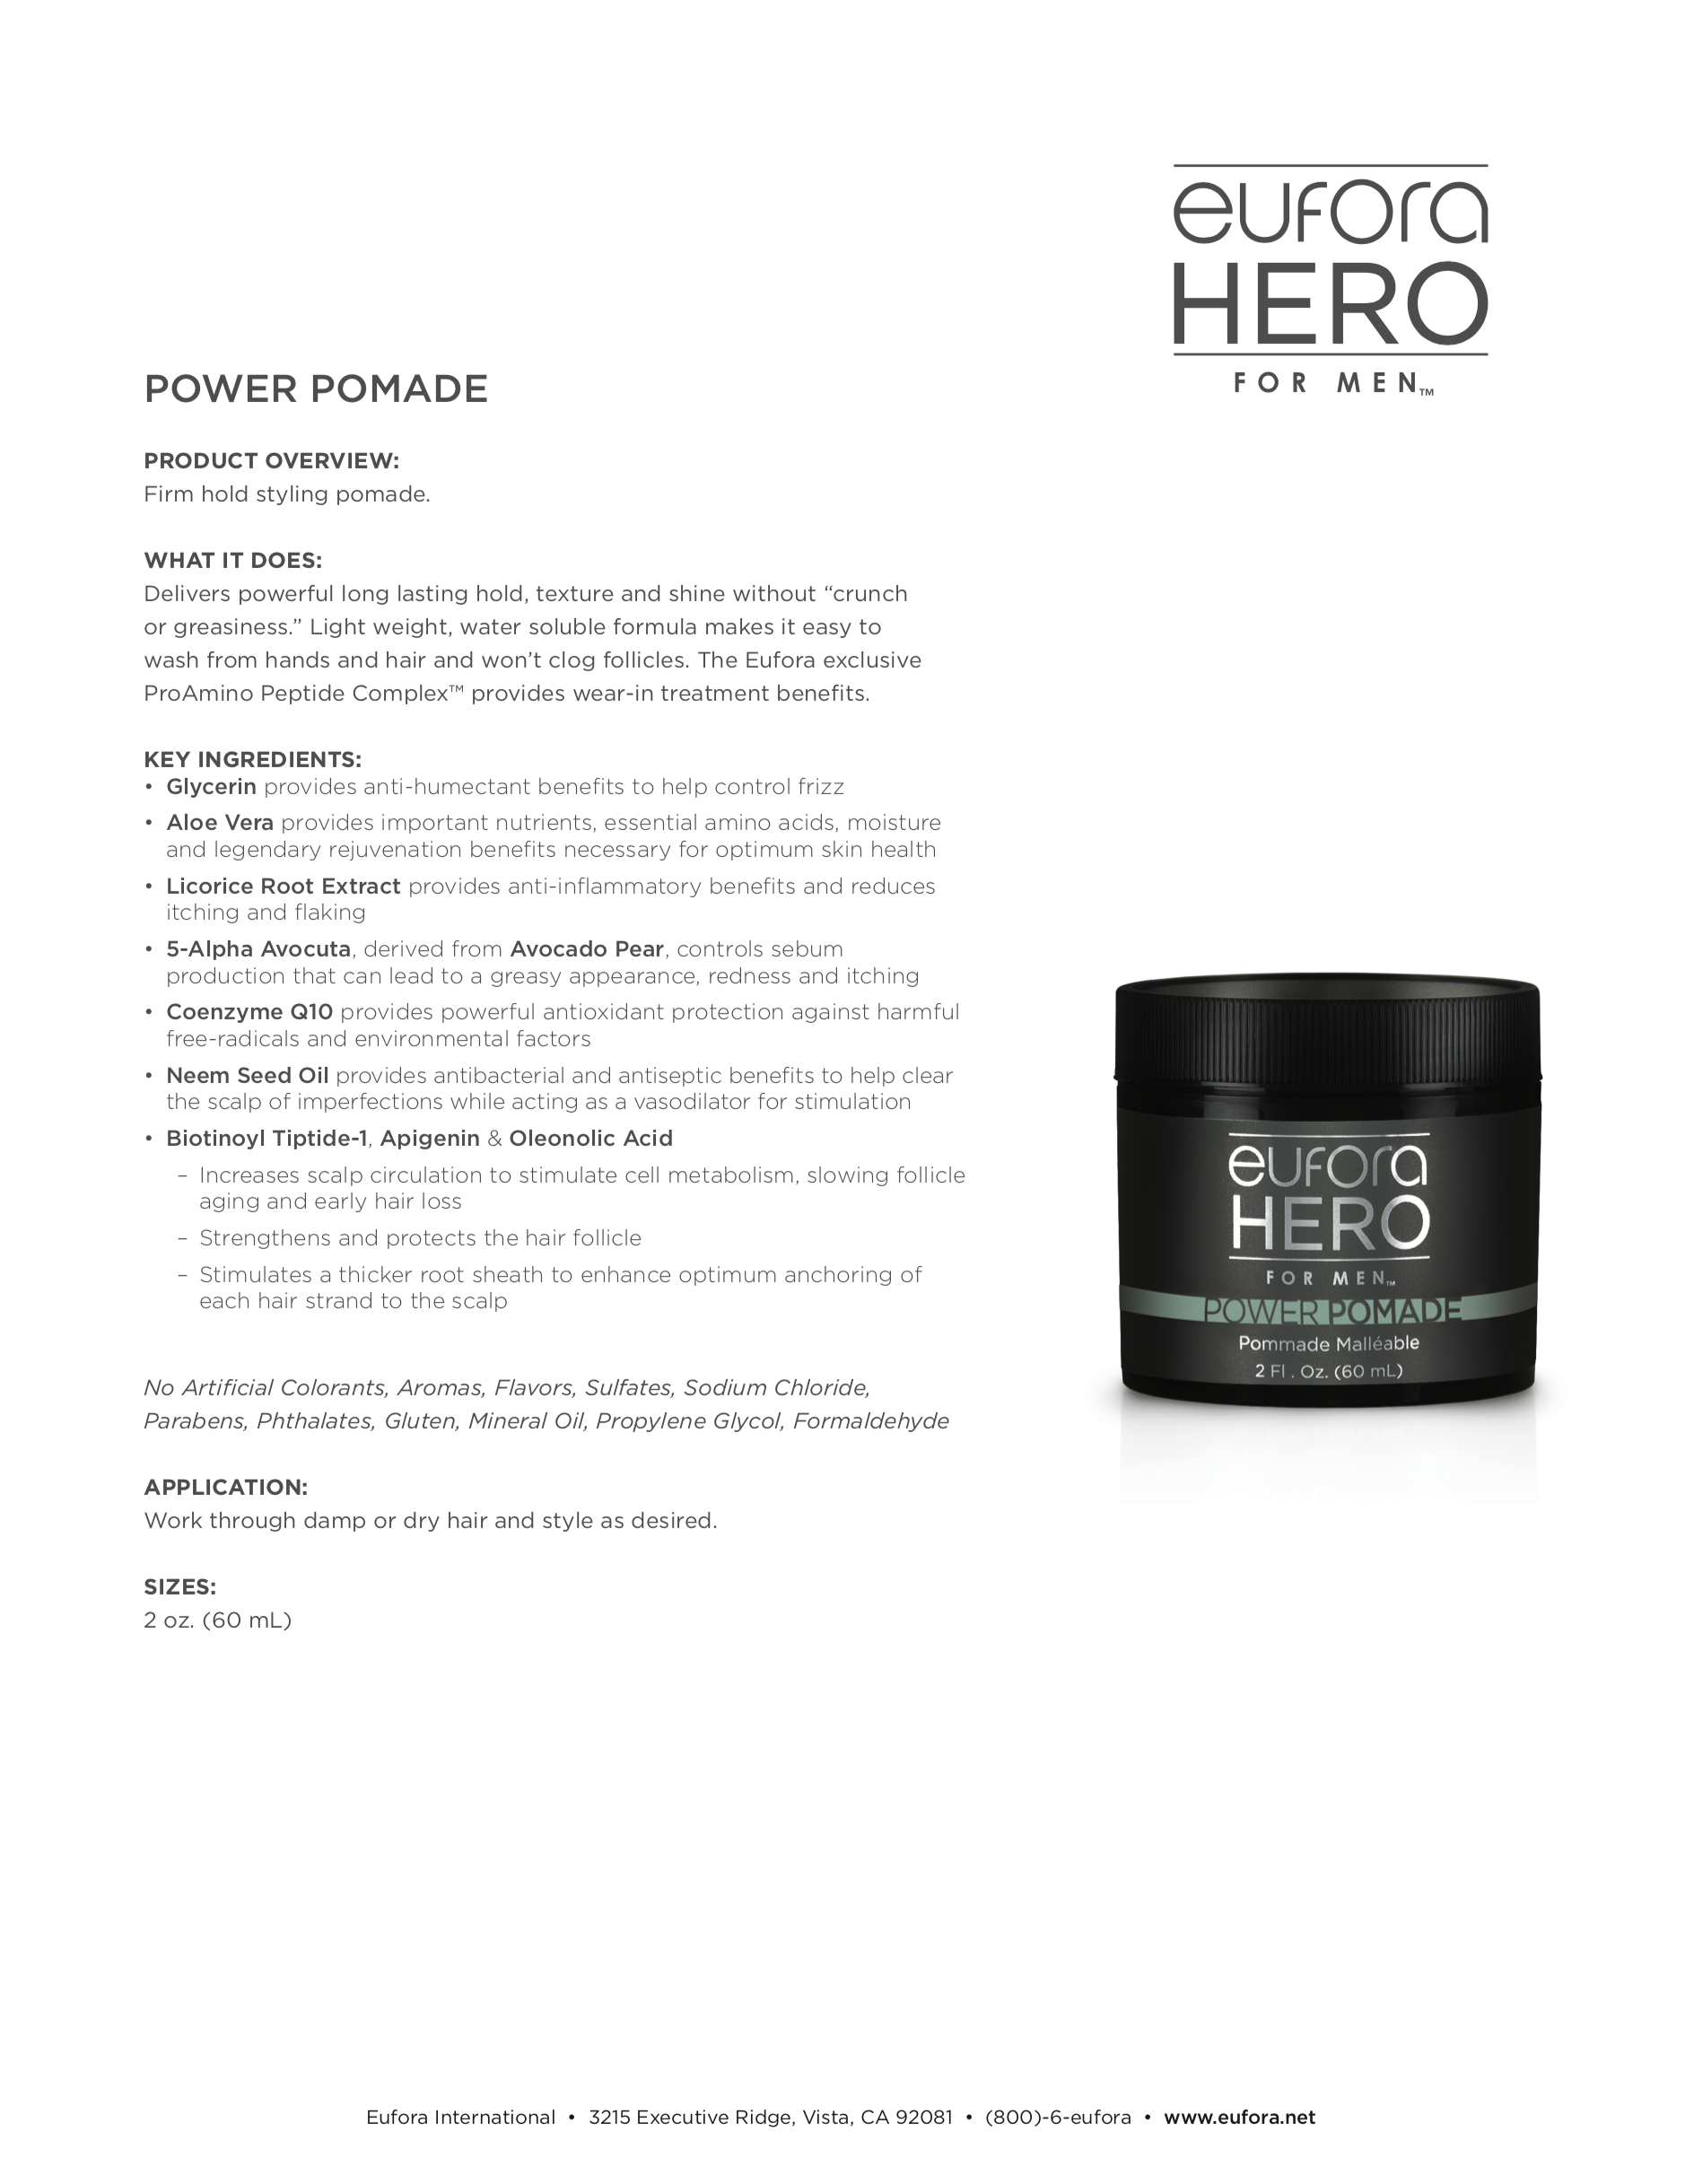 Power Pomade Fact Sheet